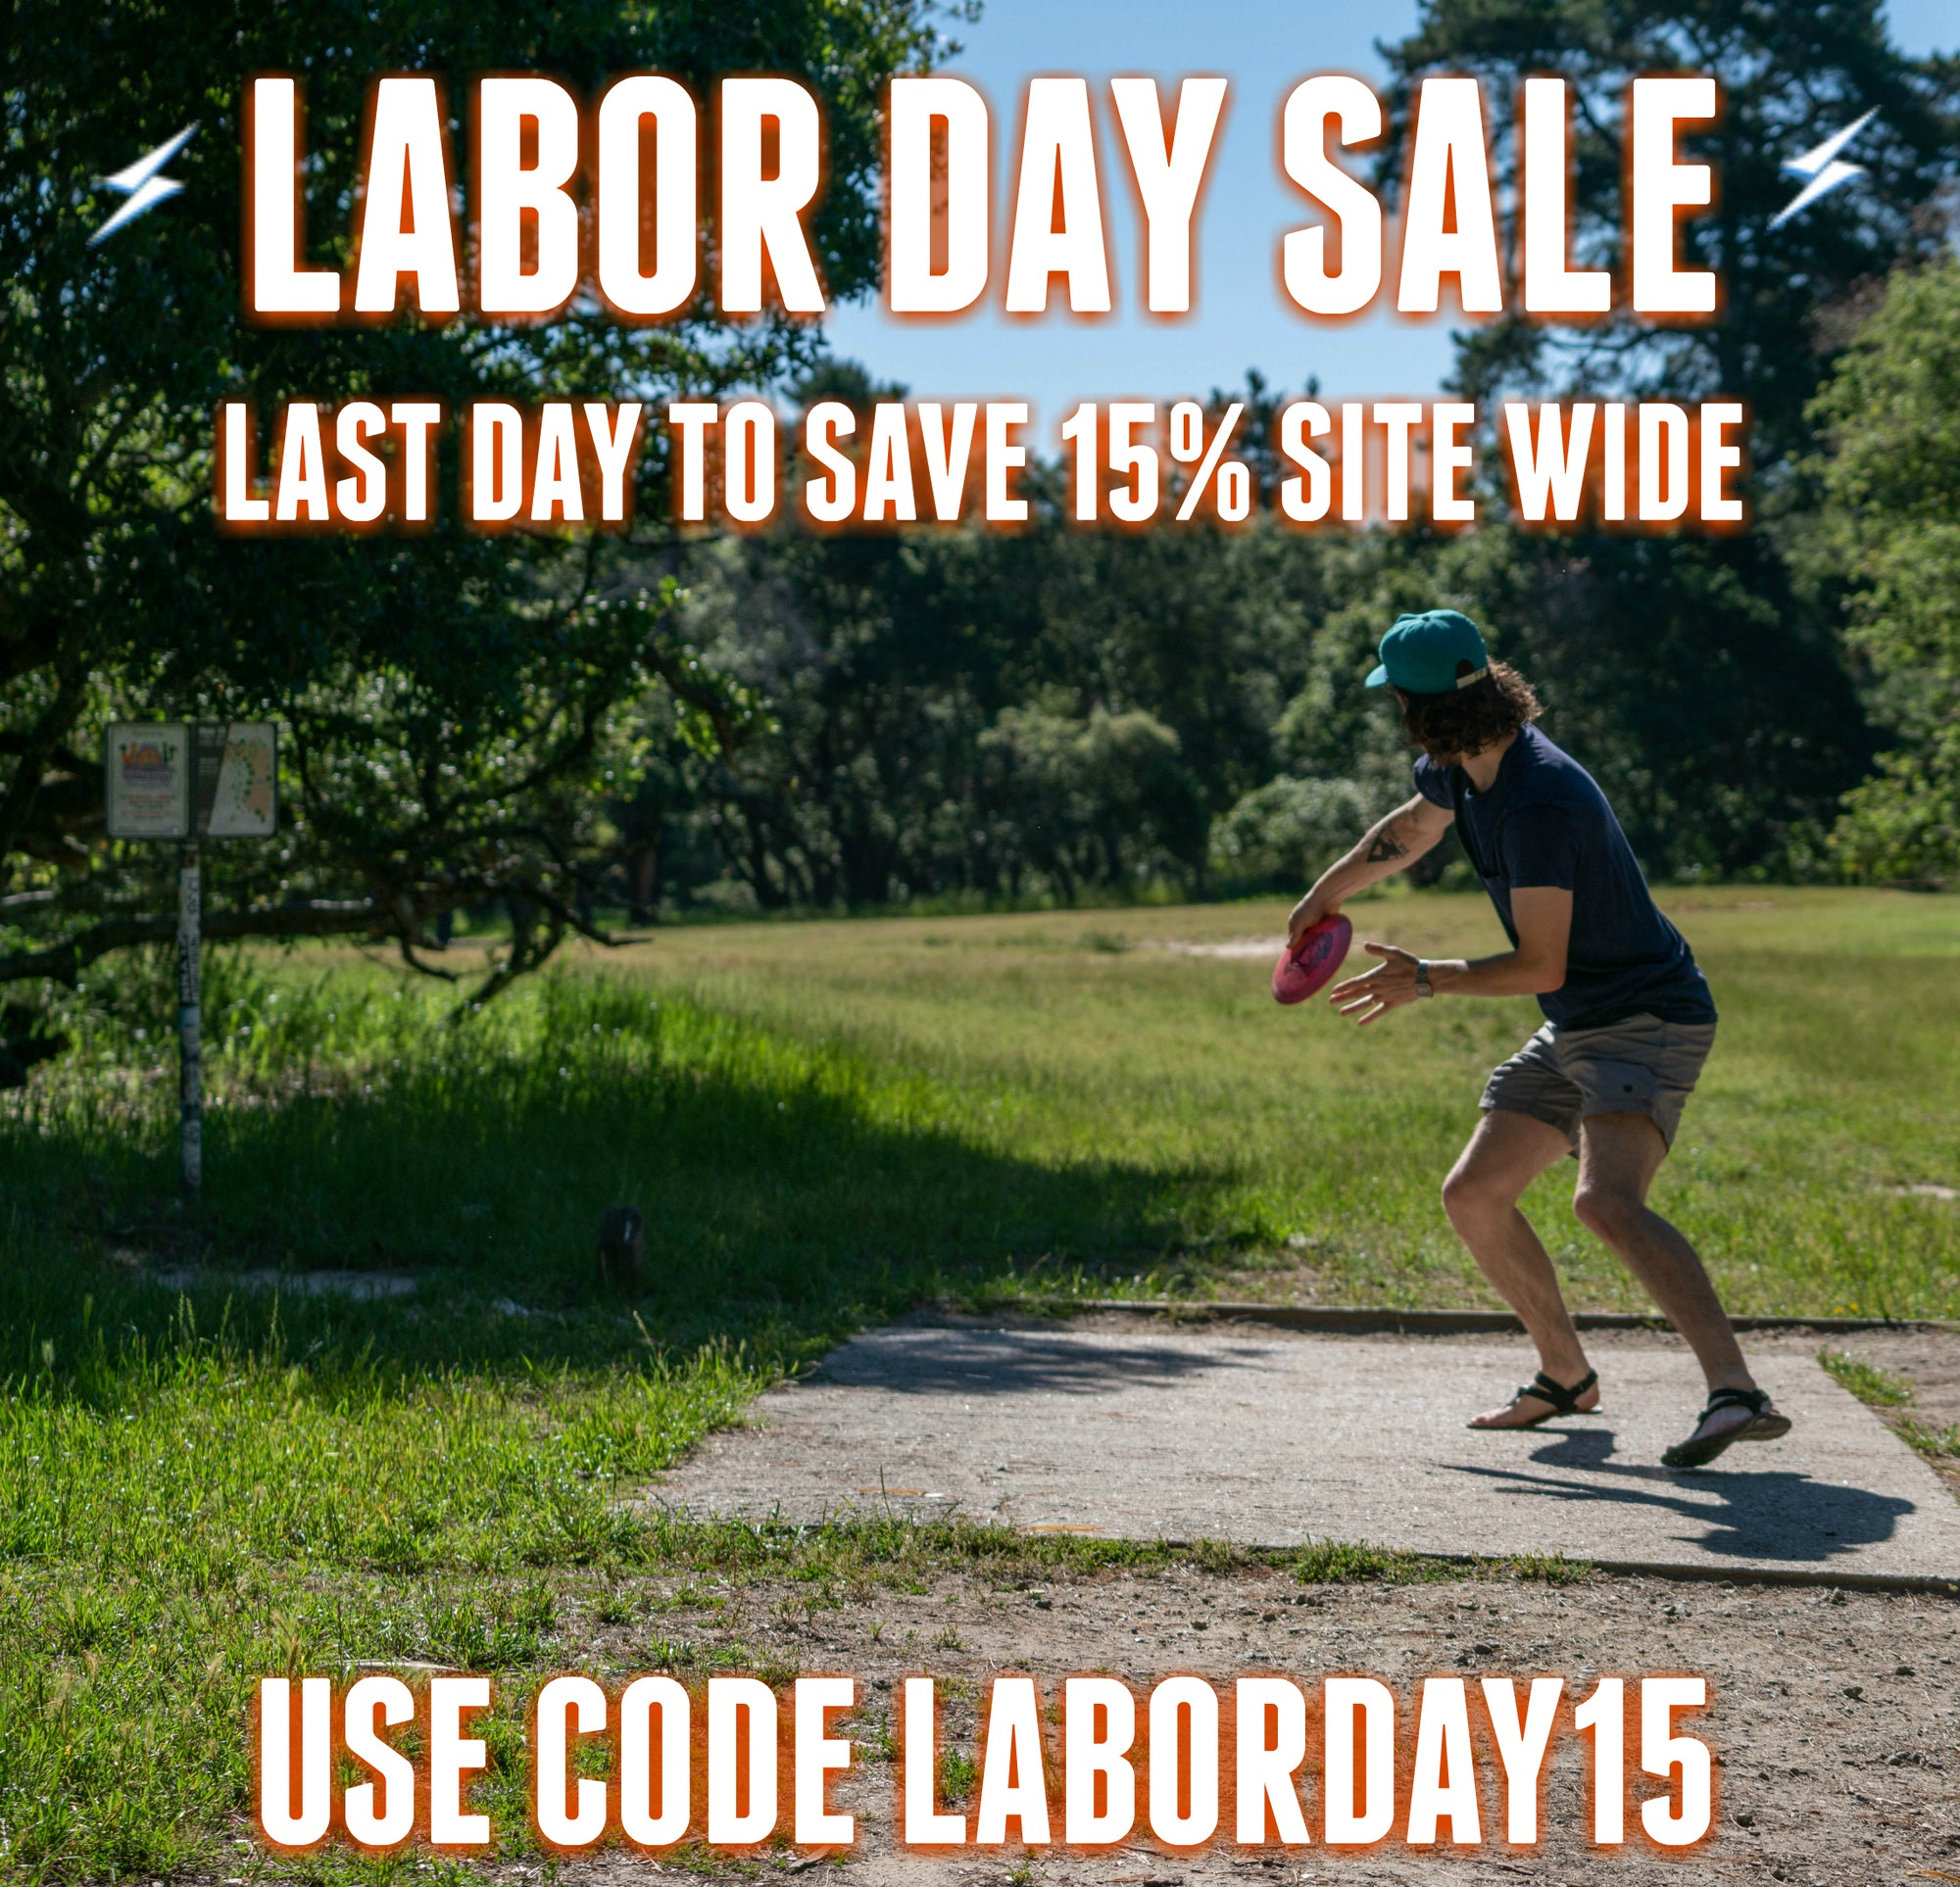 LAST DAY TO SAVE 15% SITE WIDE